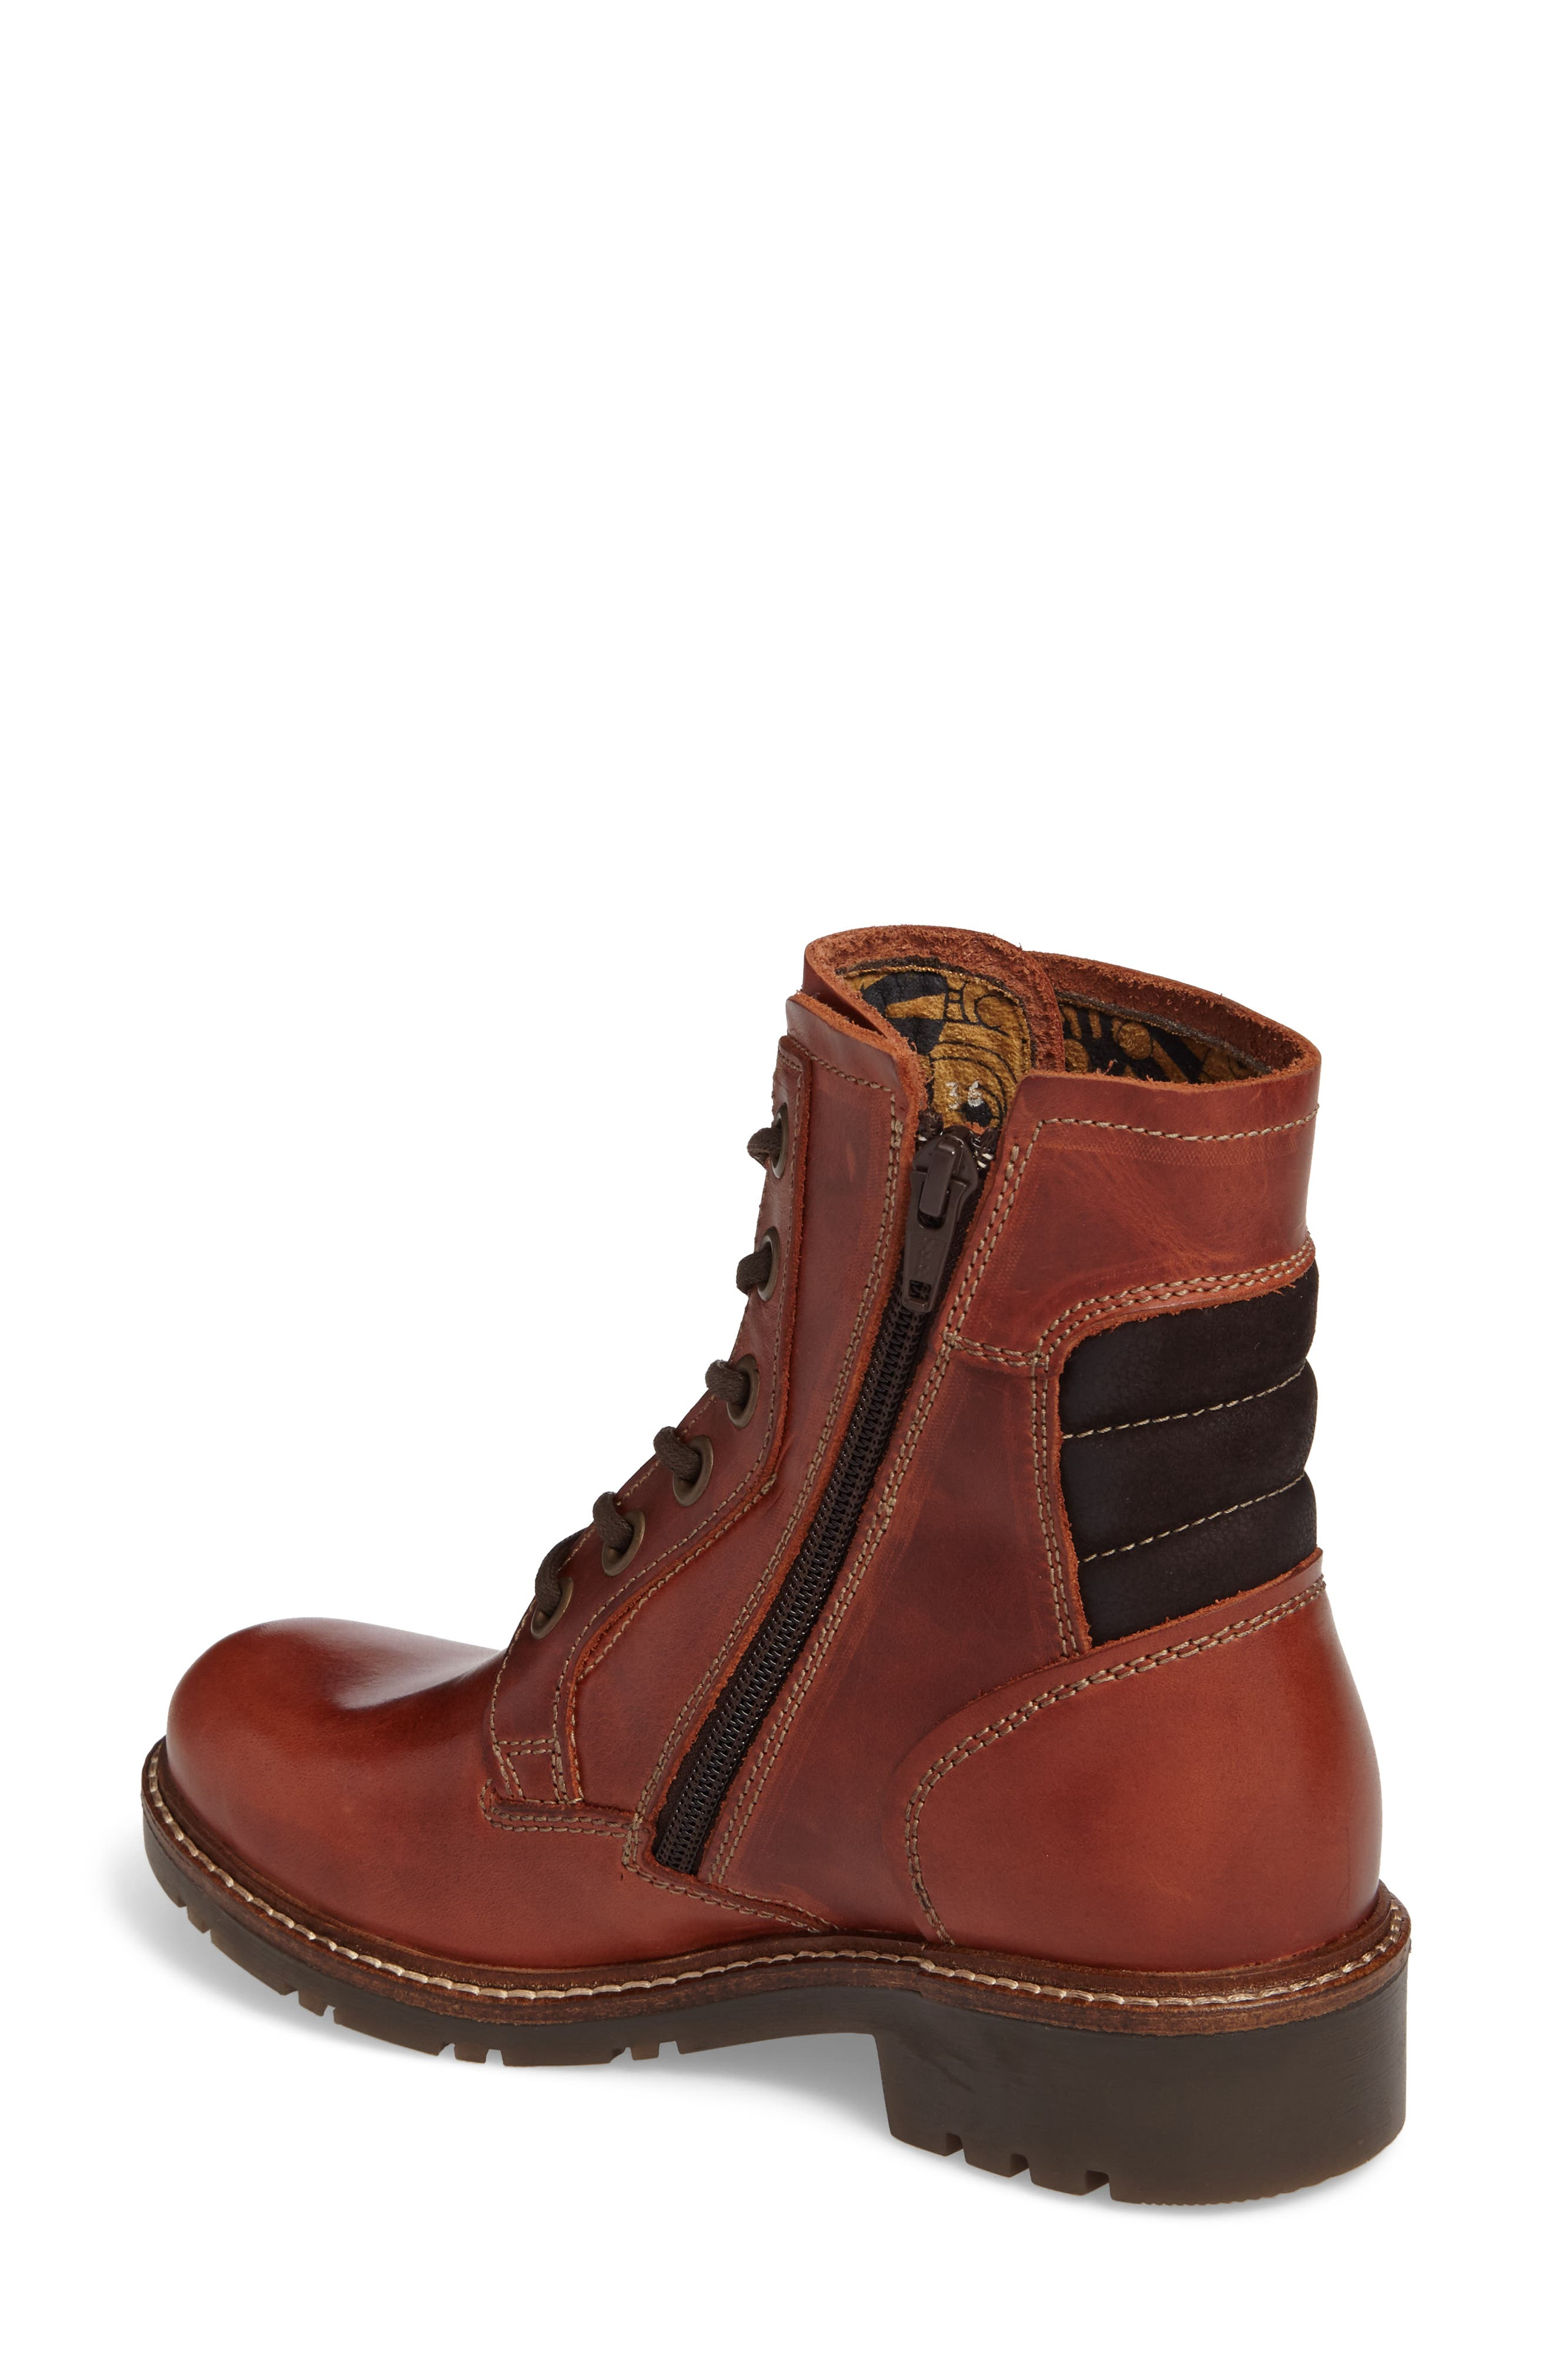 Silo Waterproof Gore-Tex<sup>®</sup> Boot,                             Alternate thumbnail 6, color,